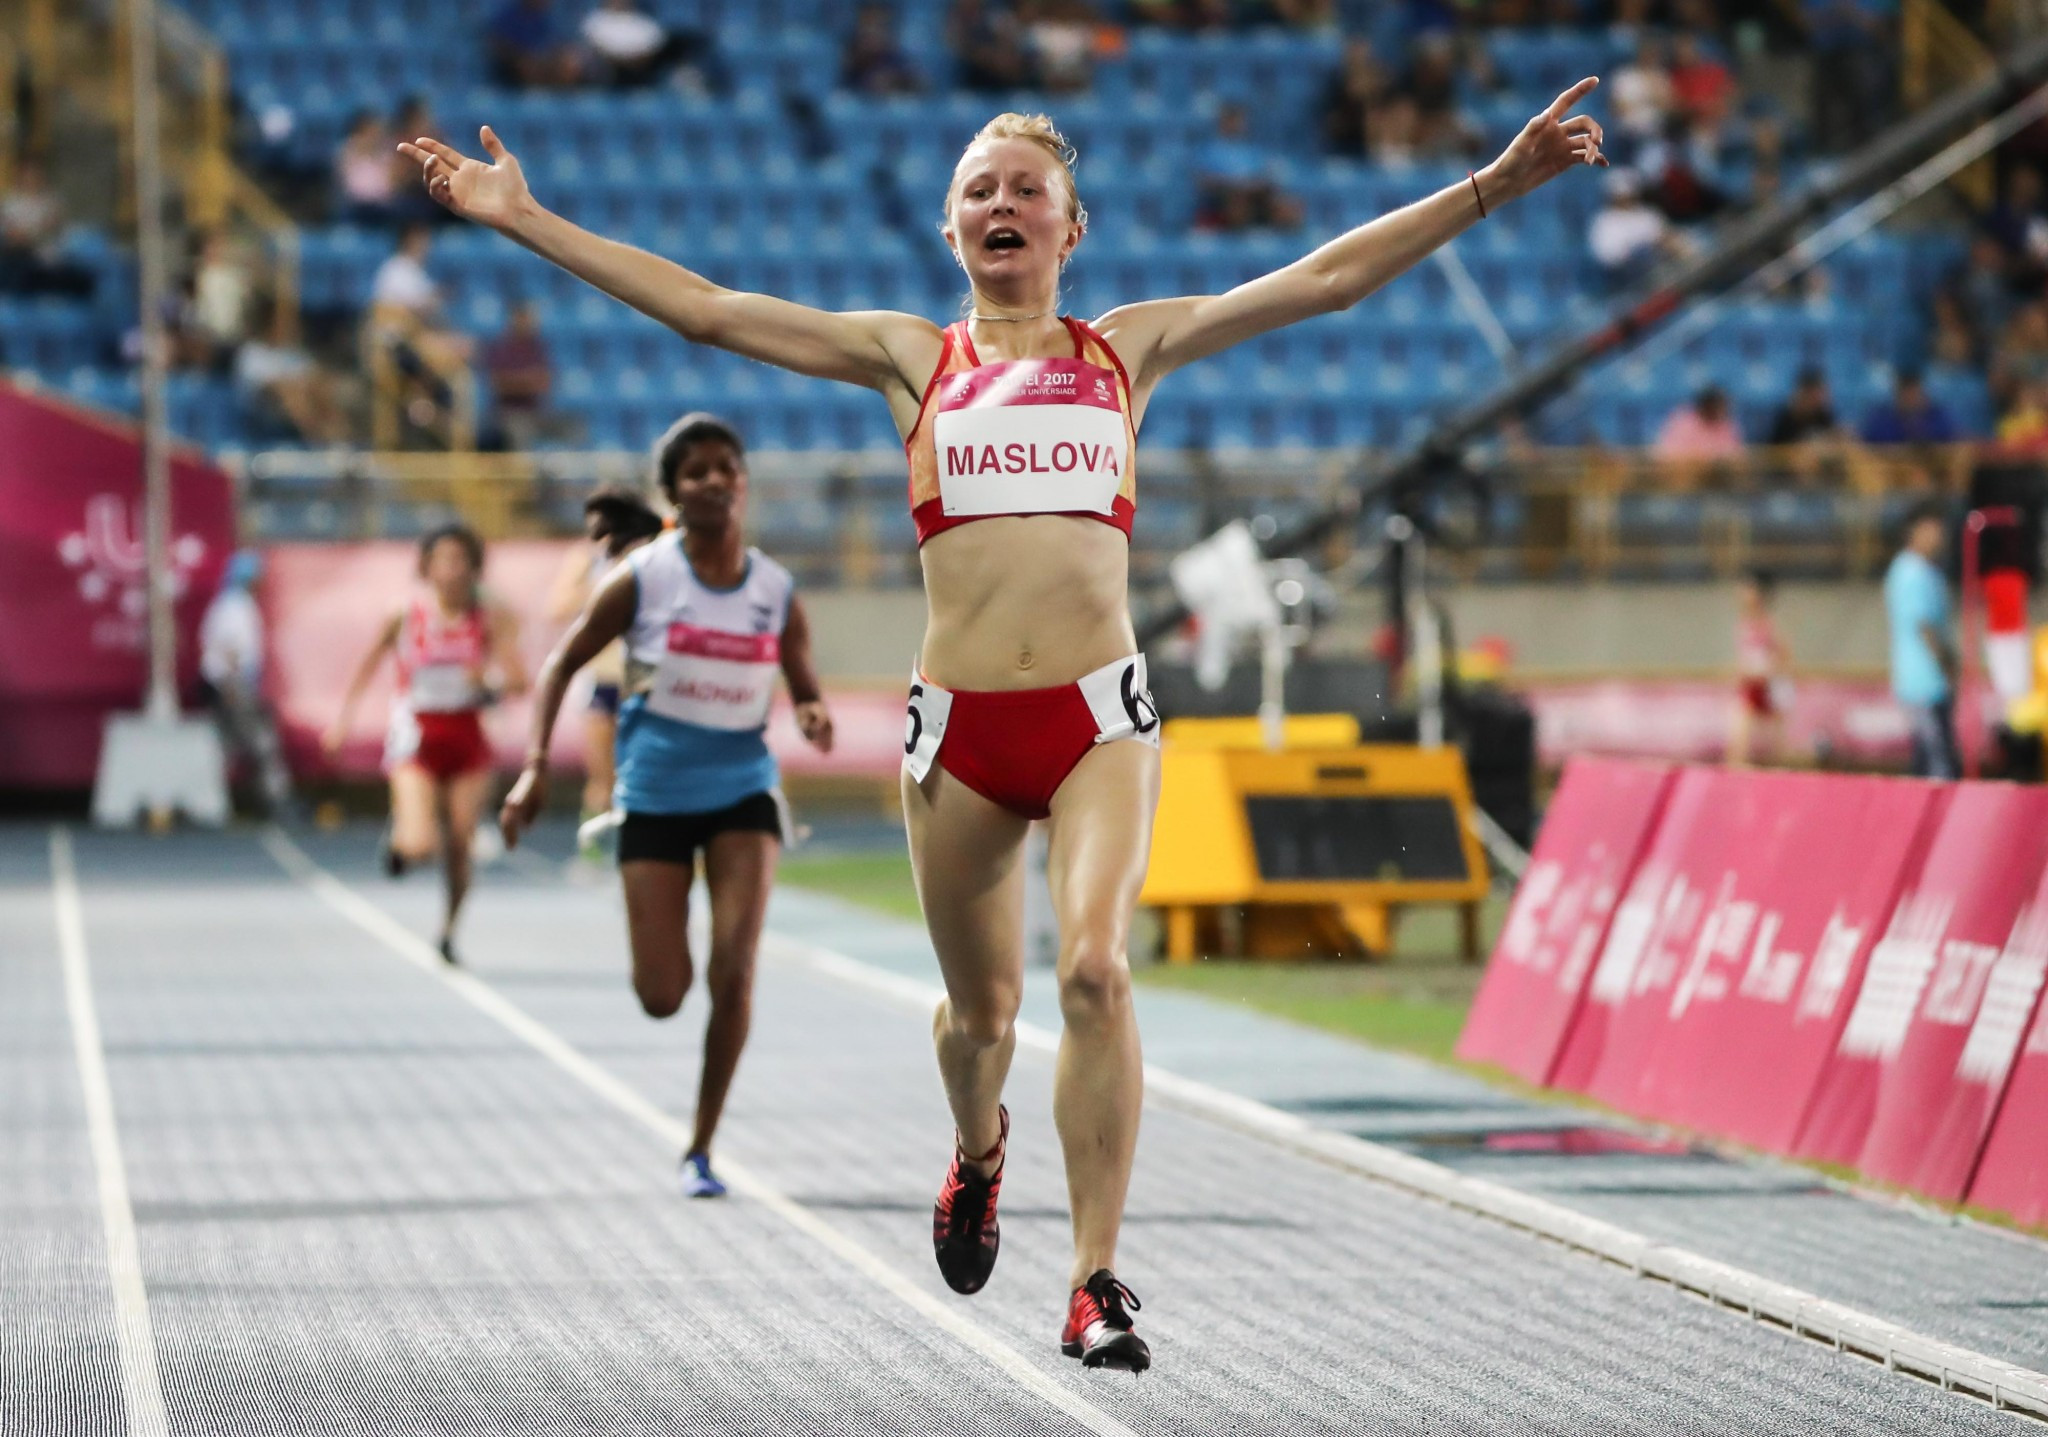 Daria Maslova won the women's 10,000m gold medal ©Taipei 2017